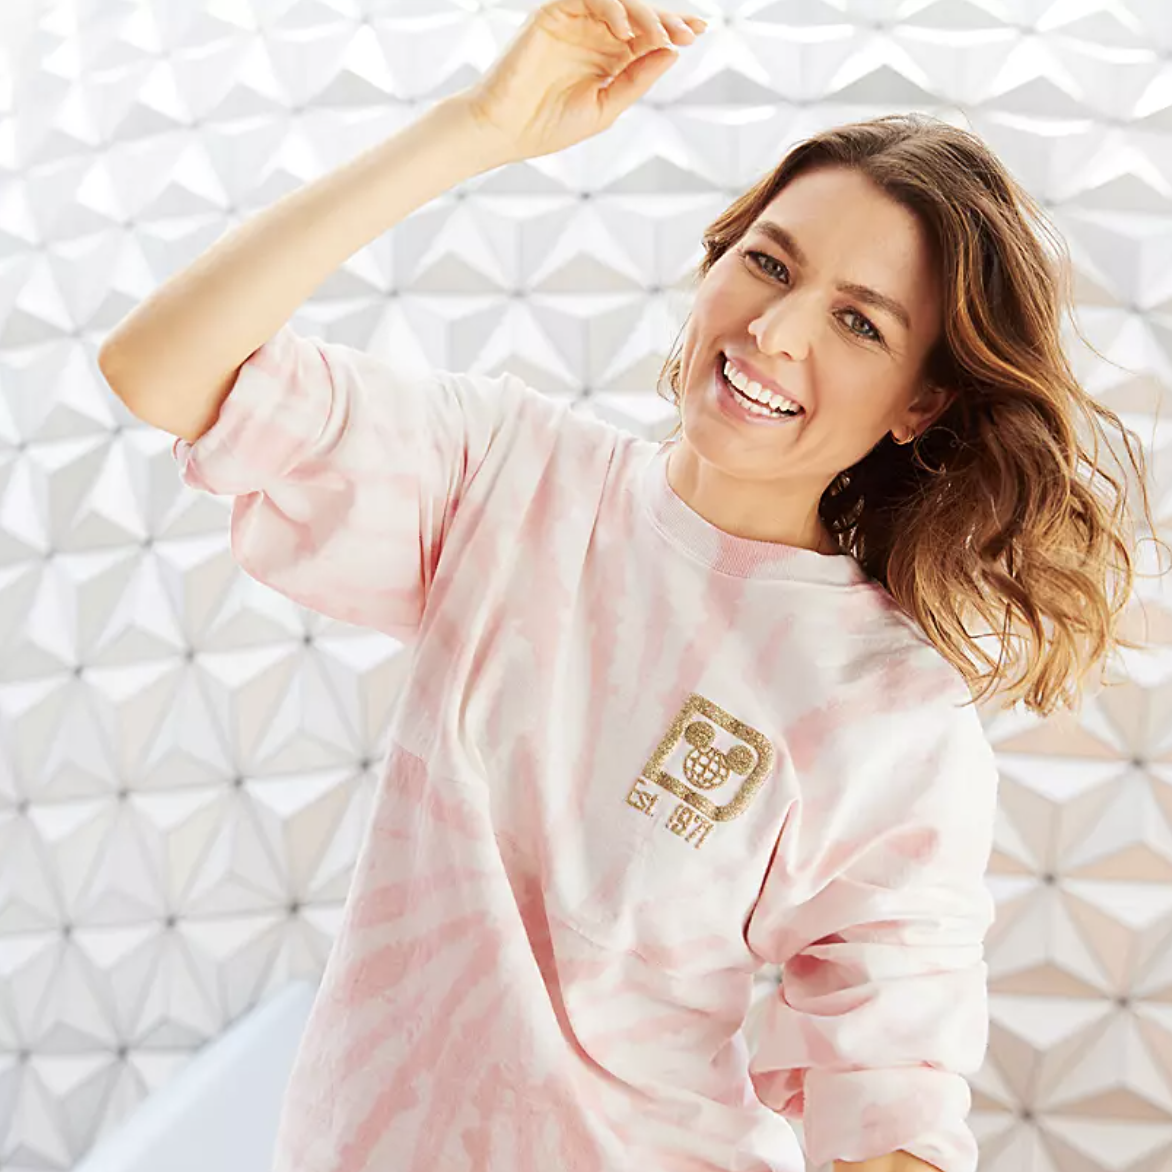 a model wearing a white and light pink tie dyed long sleeve with the Disney World logo in gold glitter